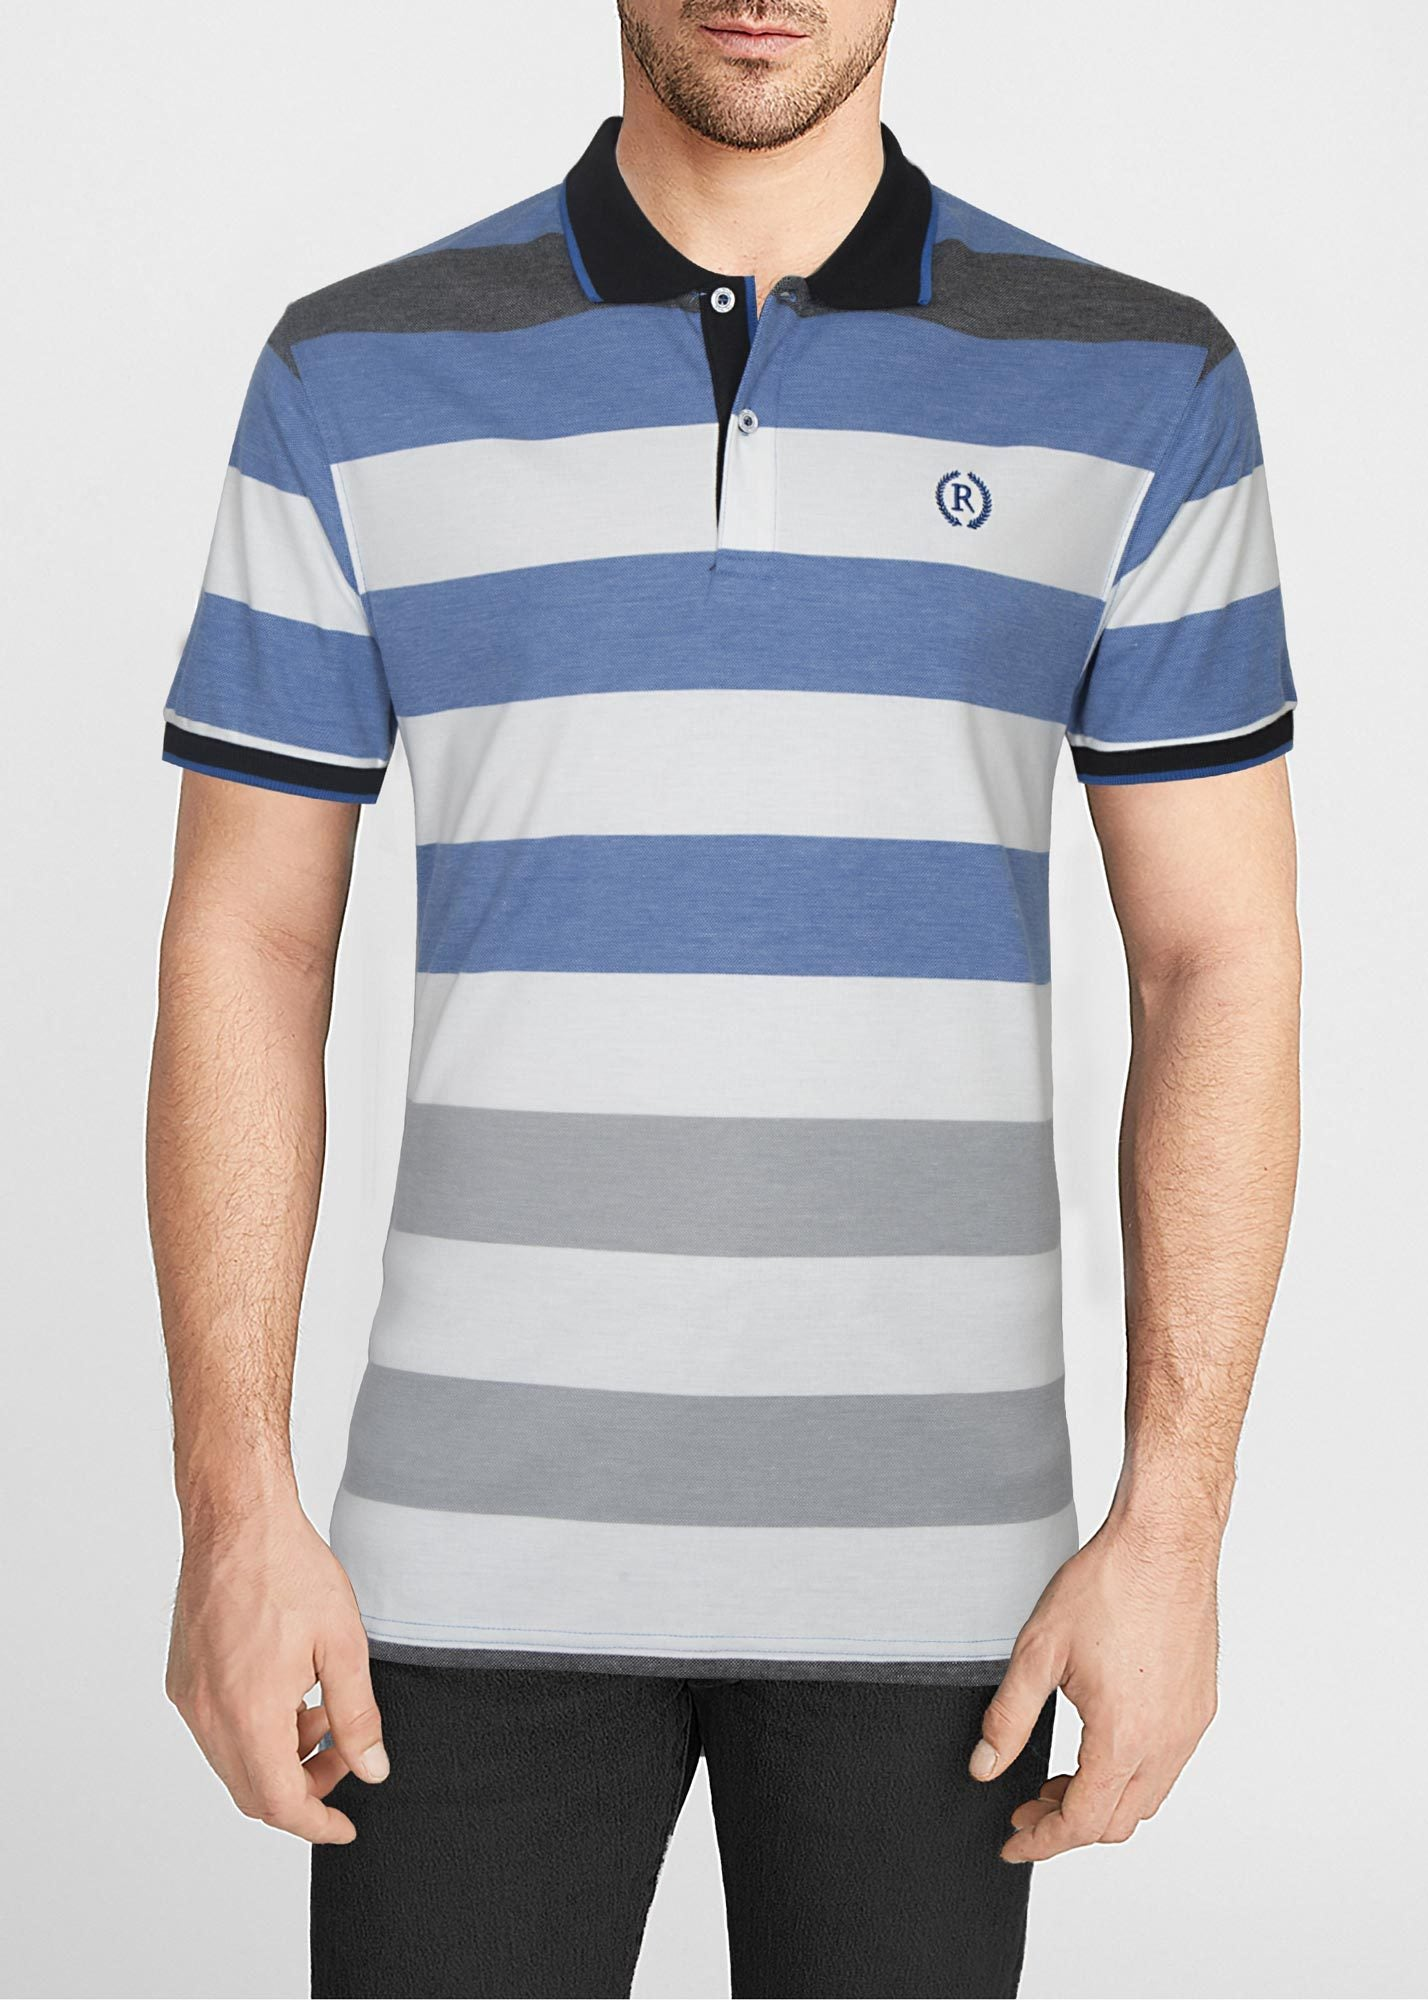 POLO SHIRT C11918-BL